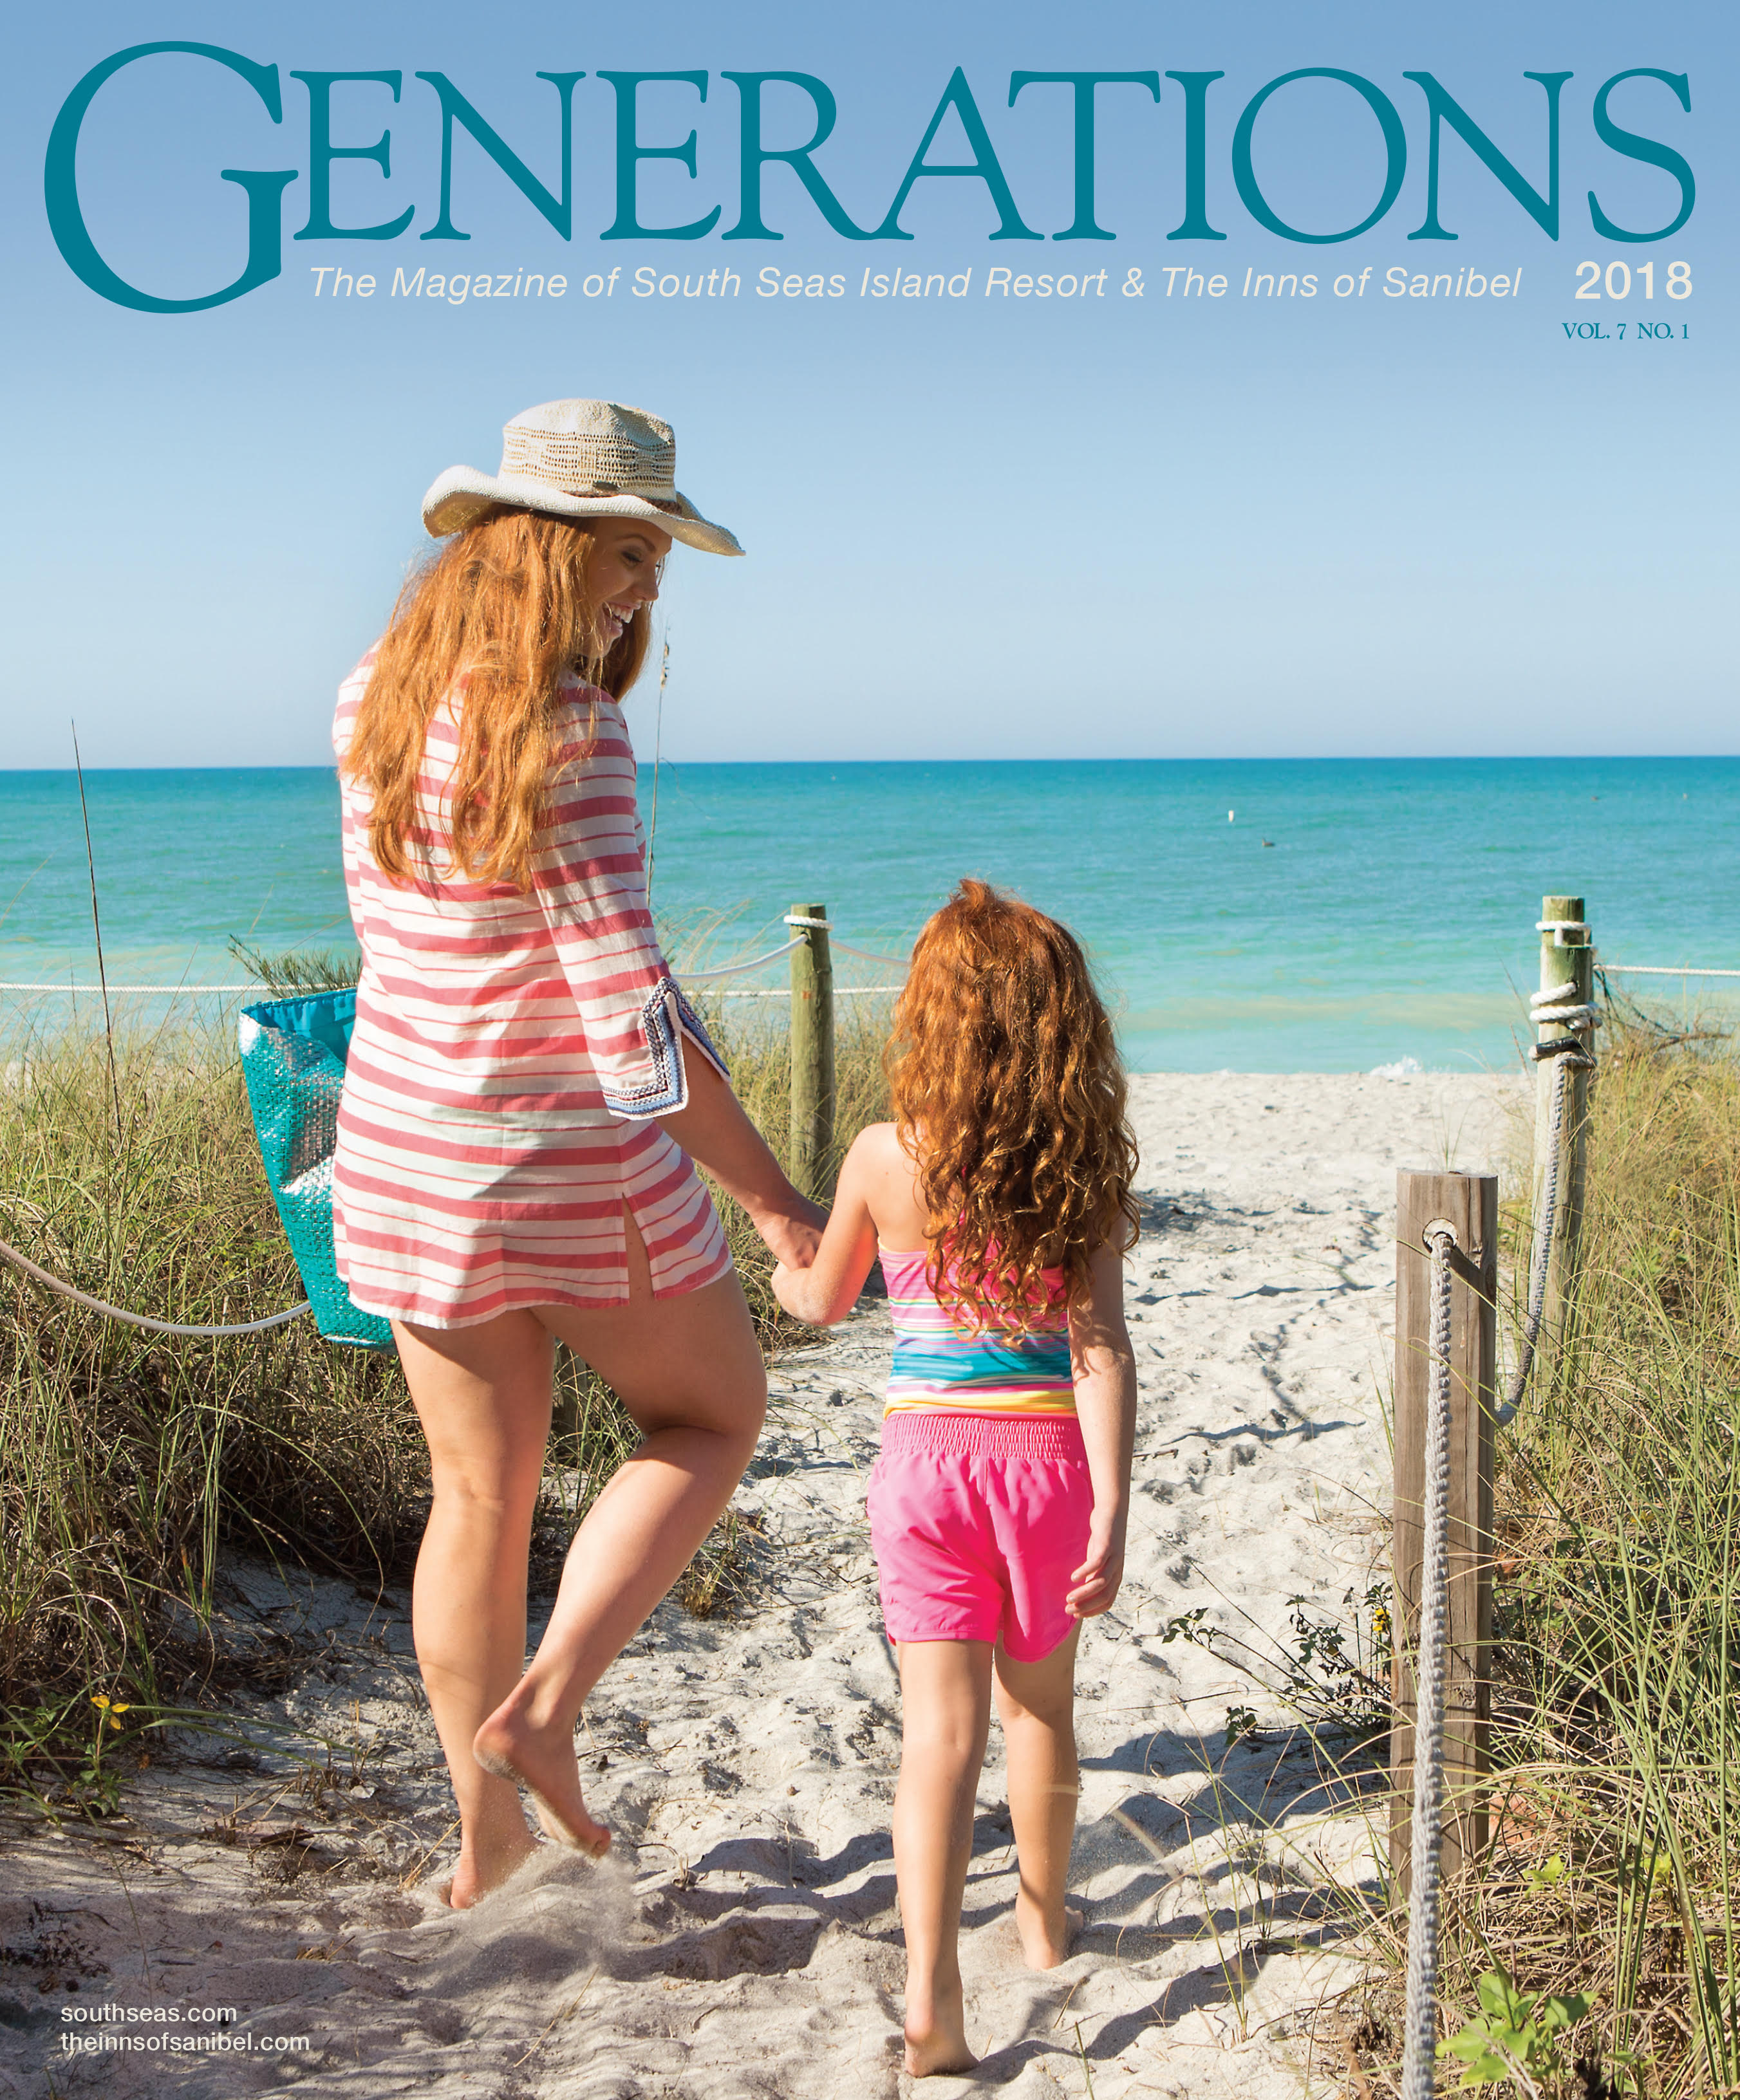 Magazine Cover Depicting Mother and Child Walking to the Beach